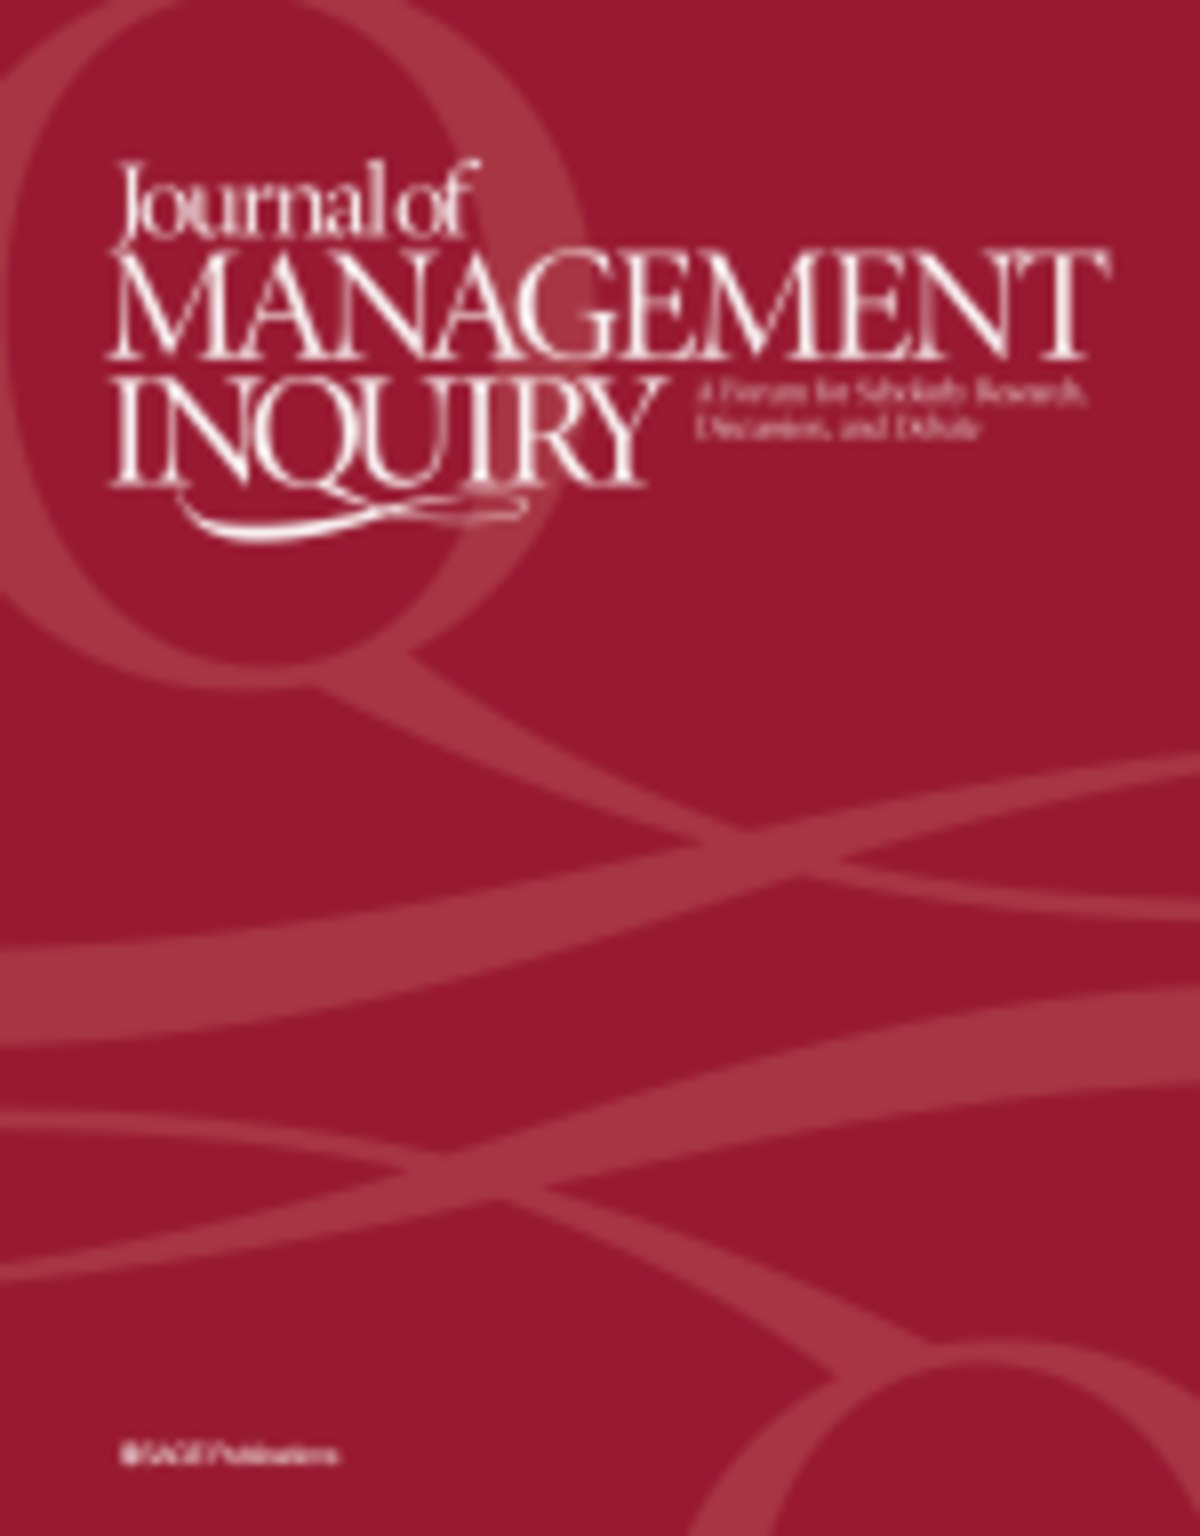 journal of managment